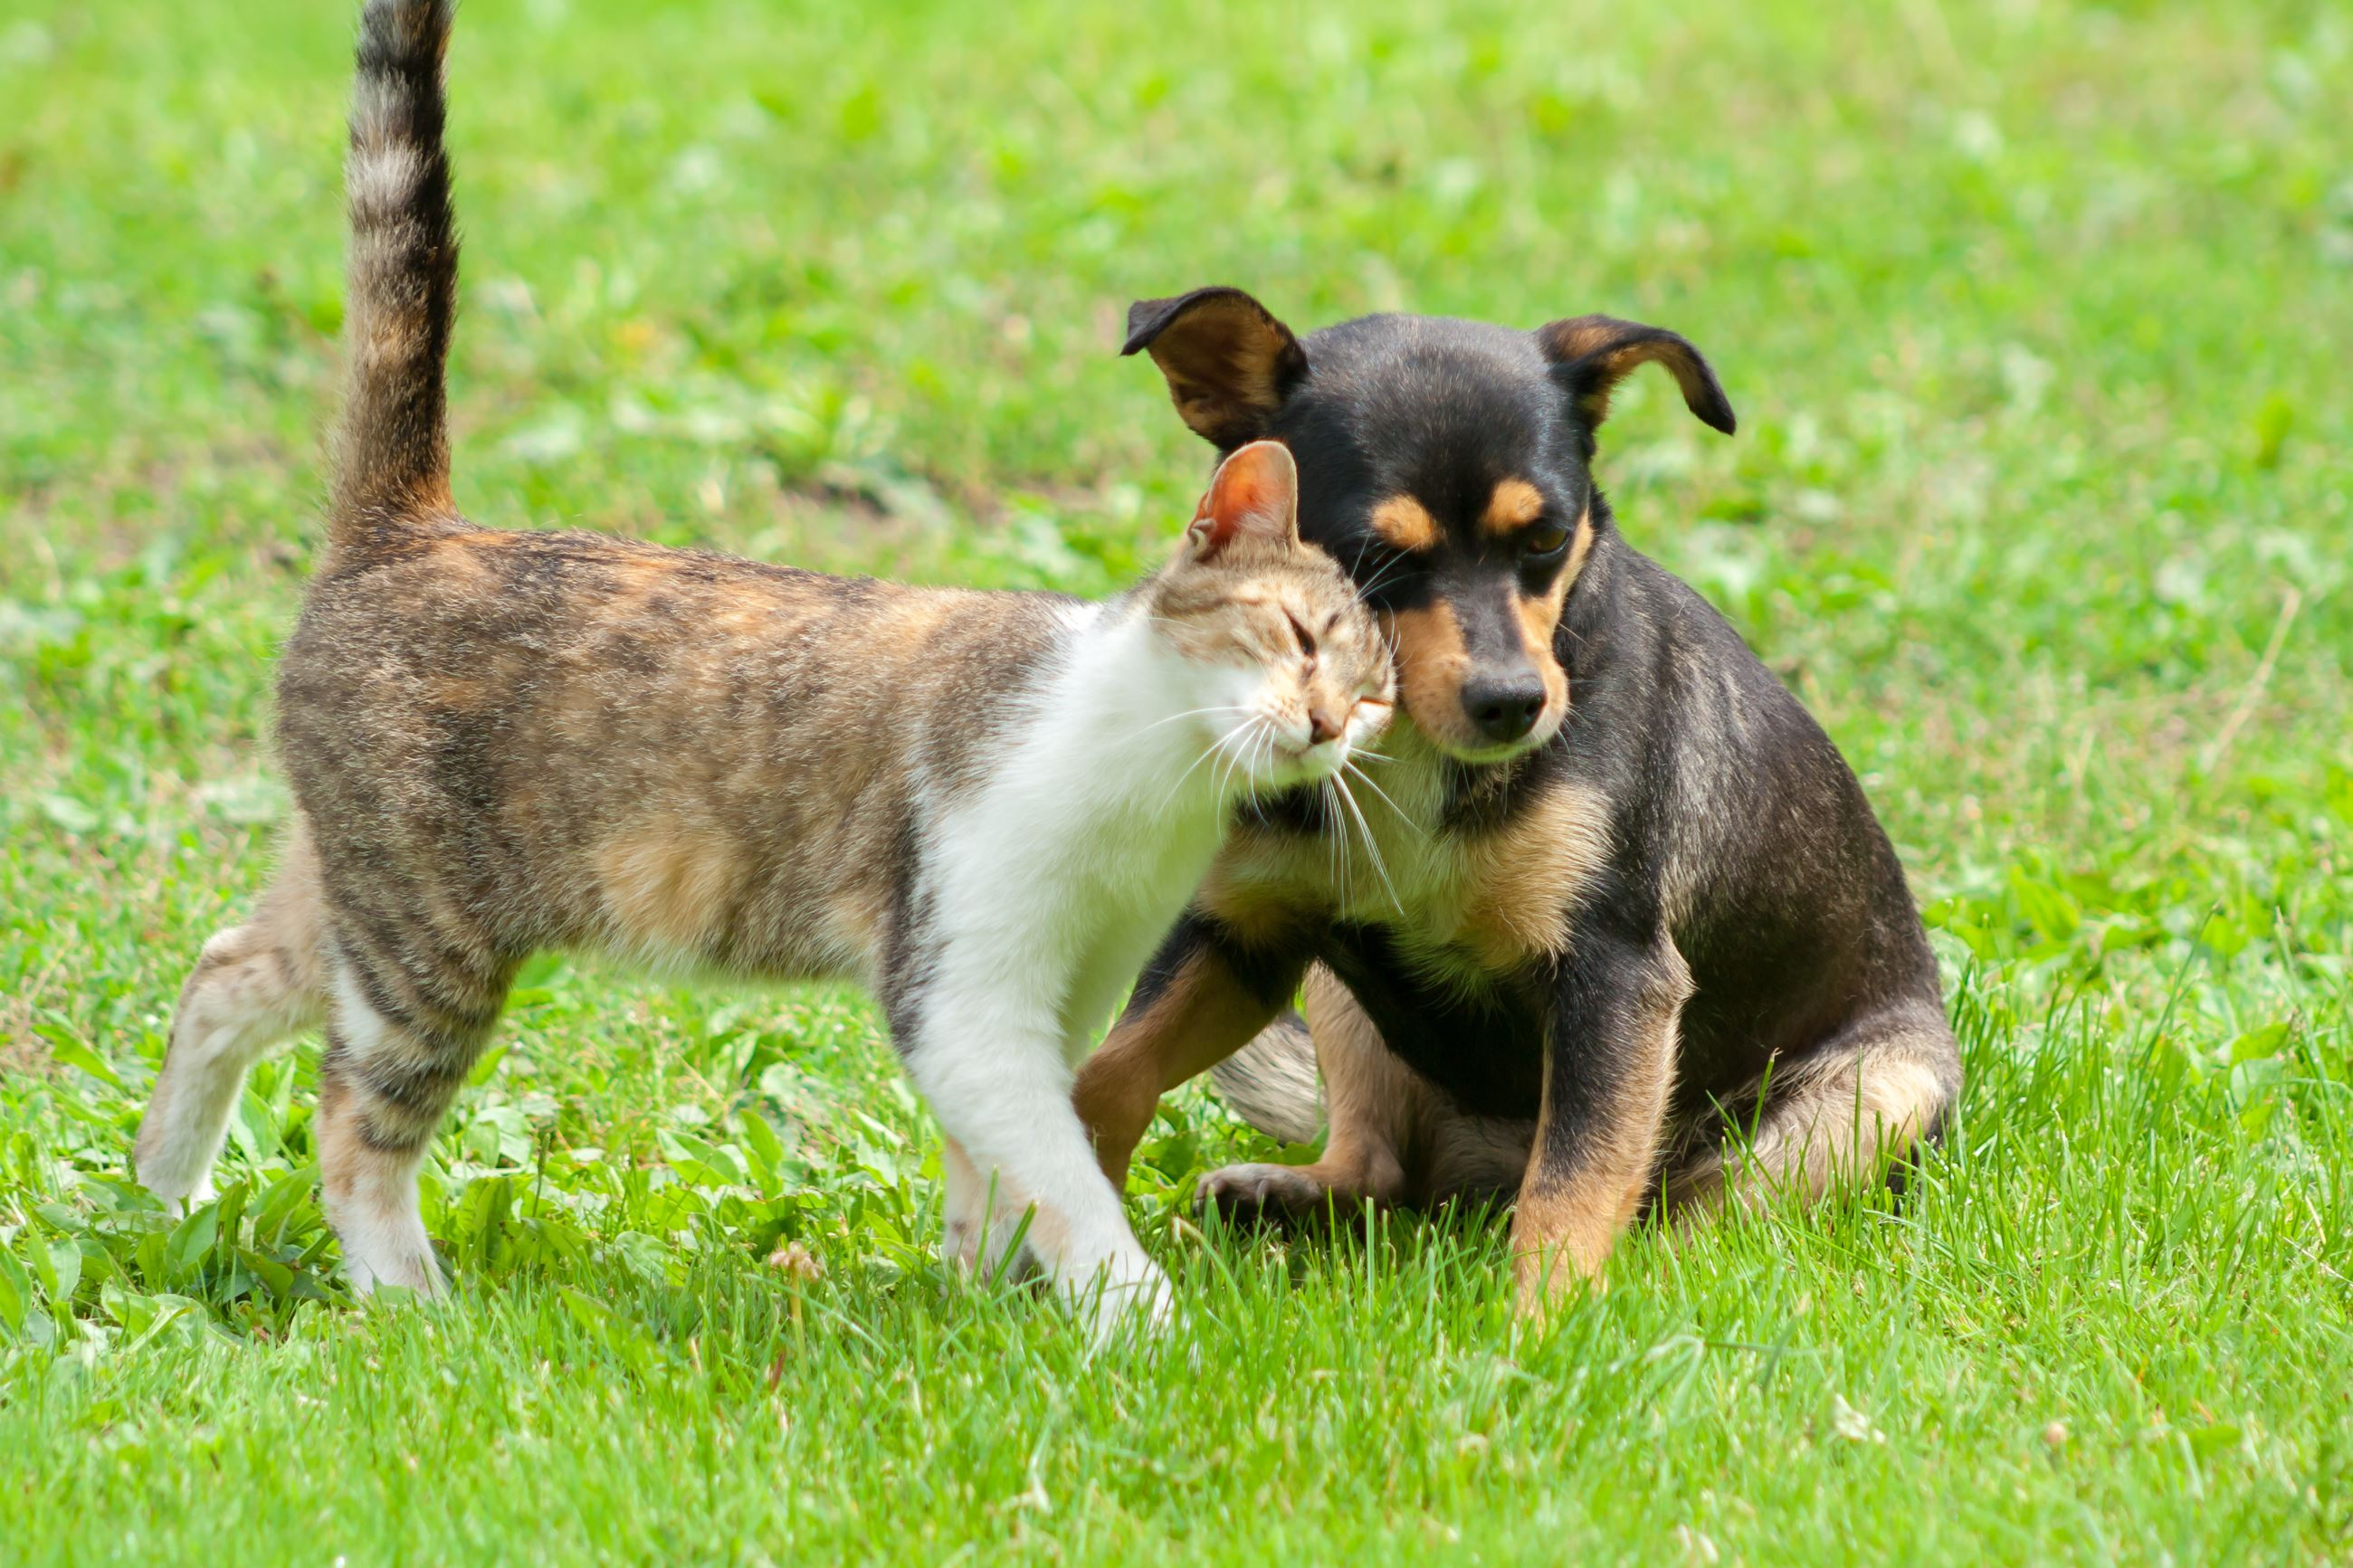 Dog and cat rubbing their heads together while sitting on a grass lawn